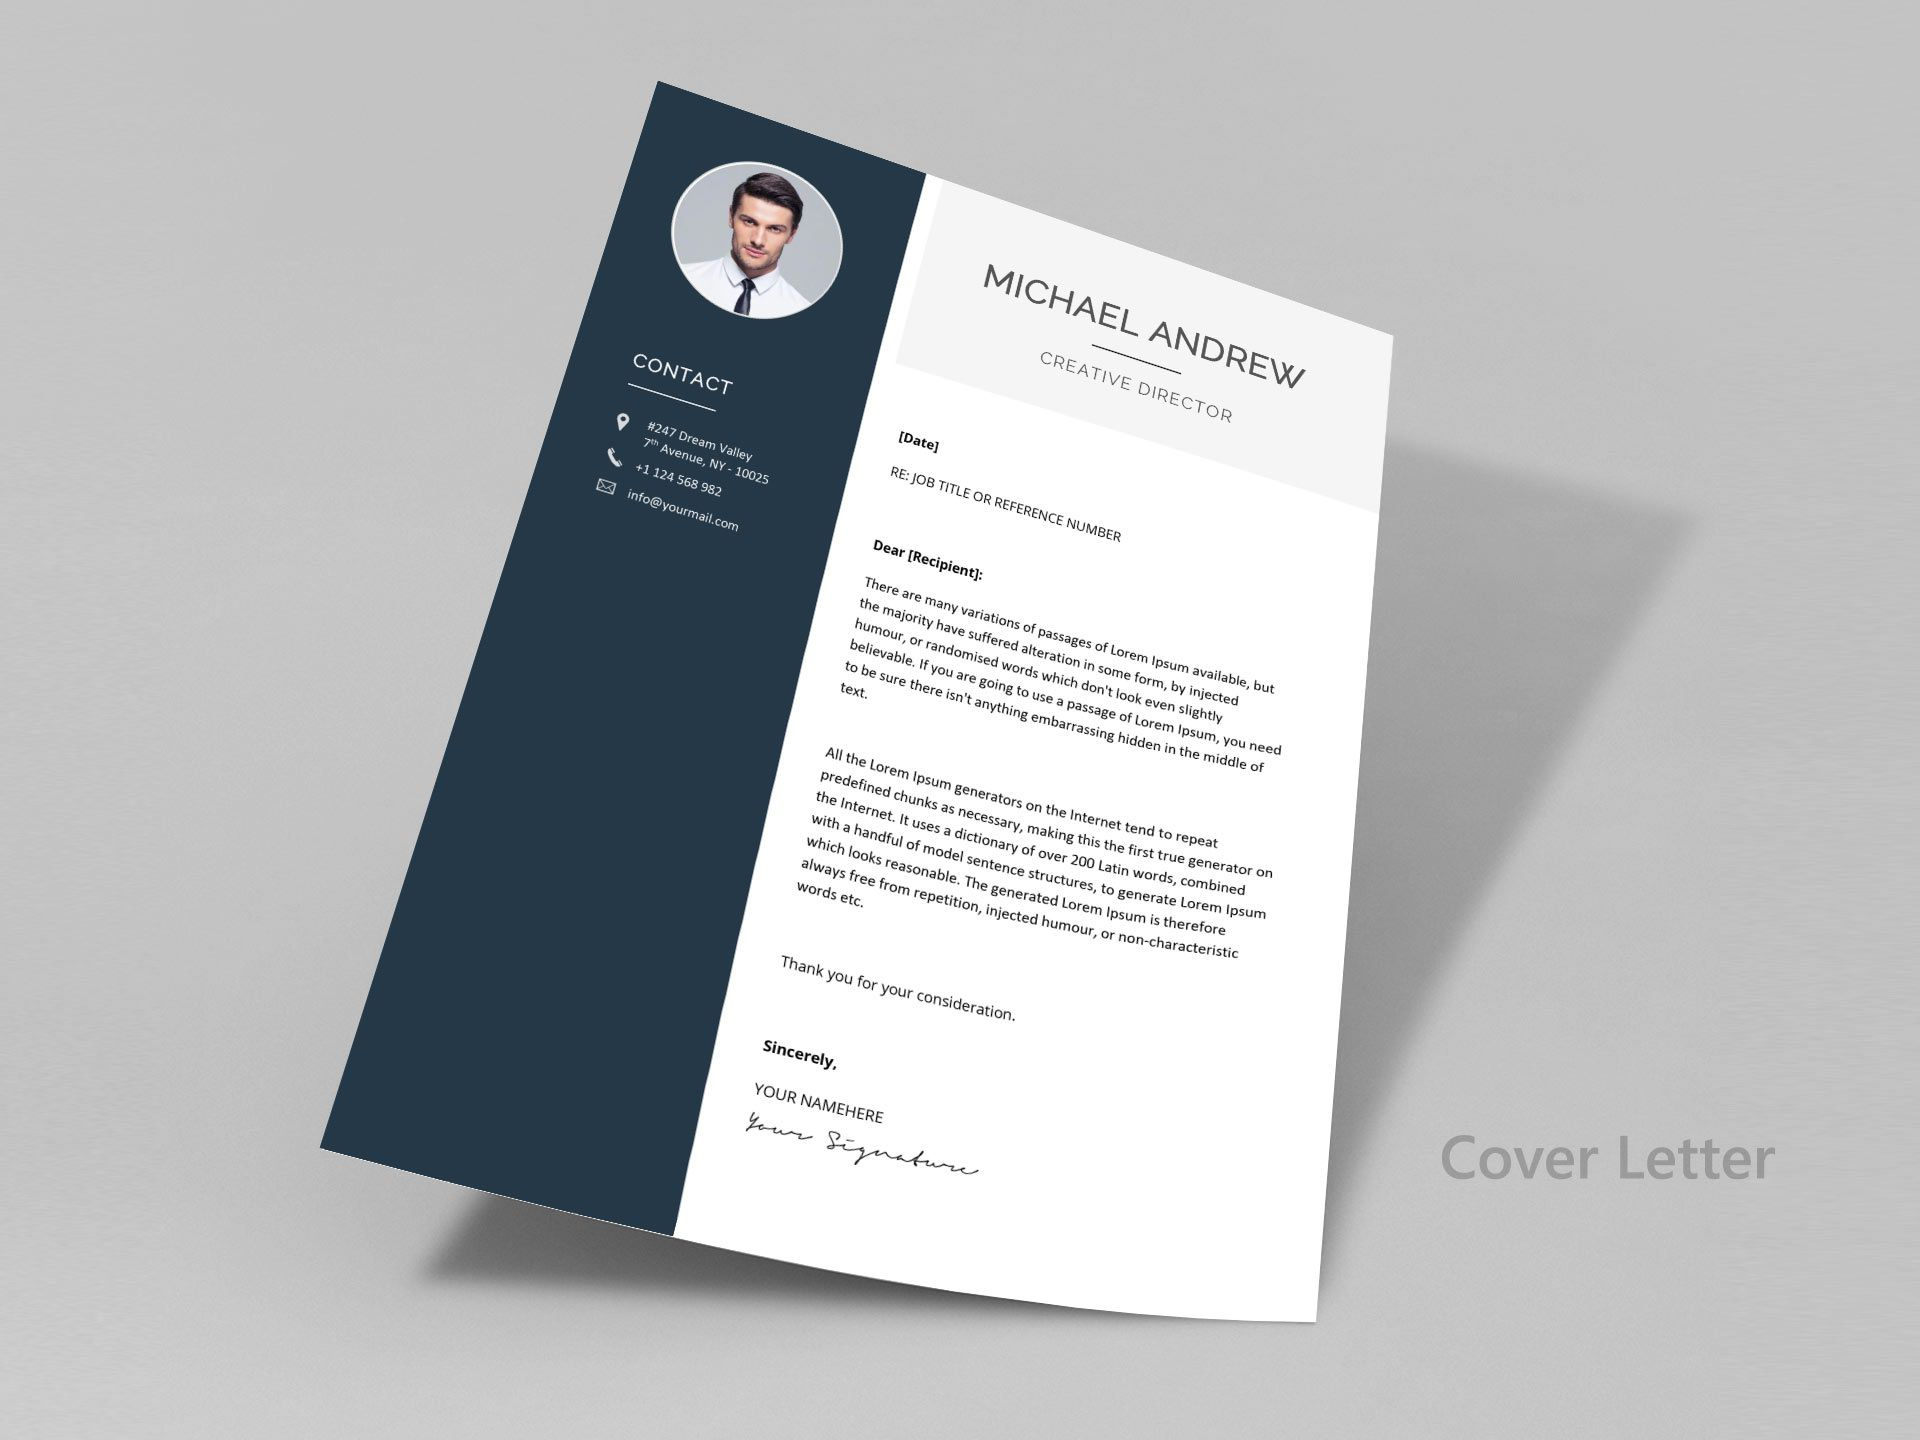 009 Stupendou Curriculum Vitae Template Free Concept  Sample Pdf Download For Student DocFull